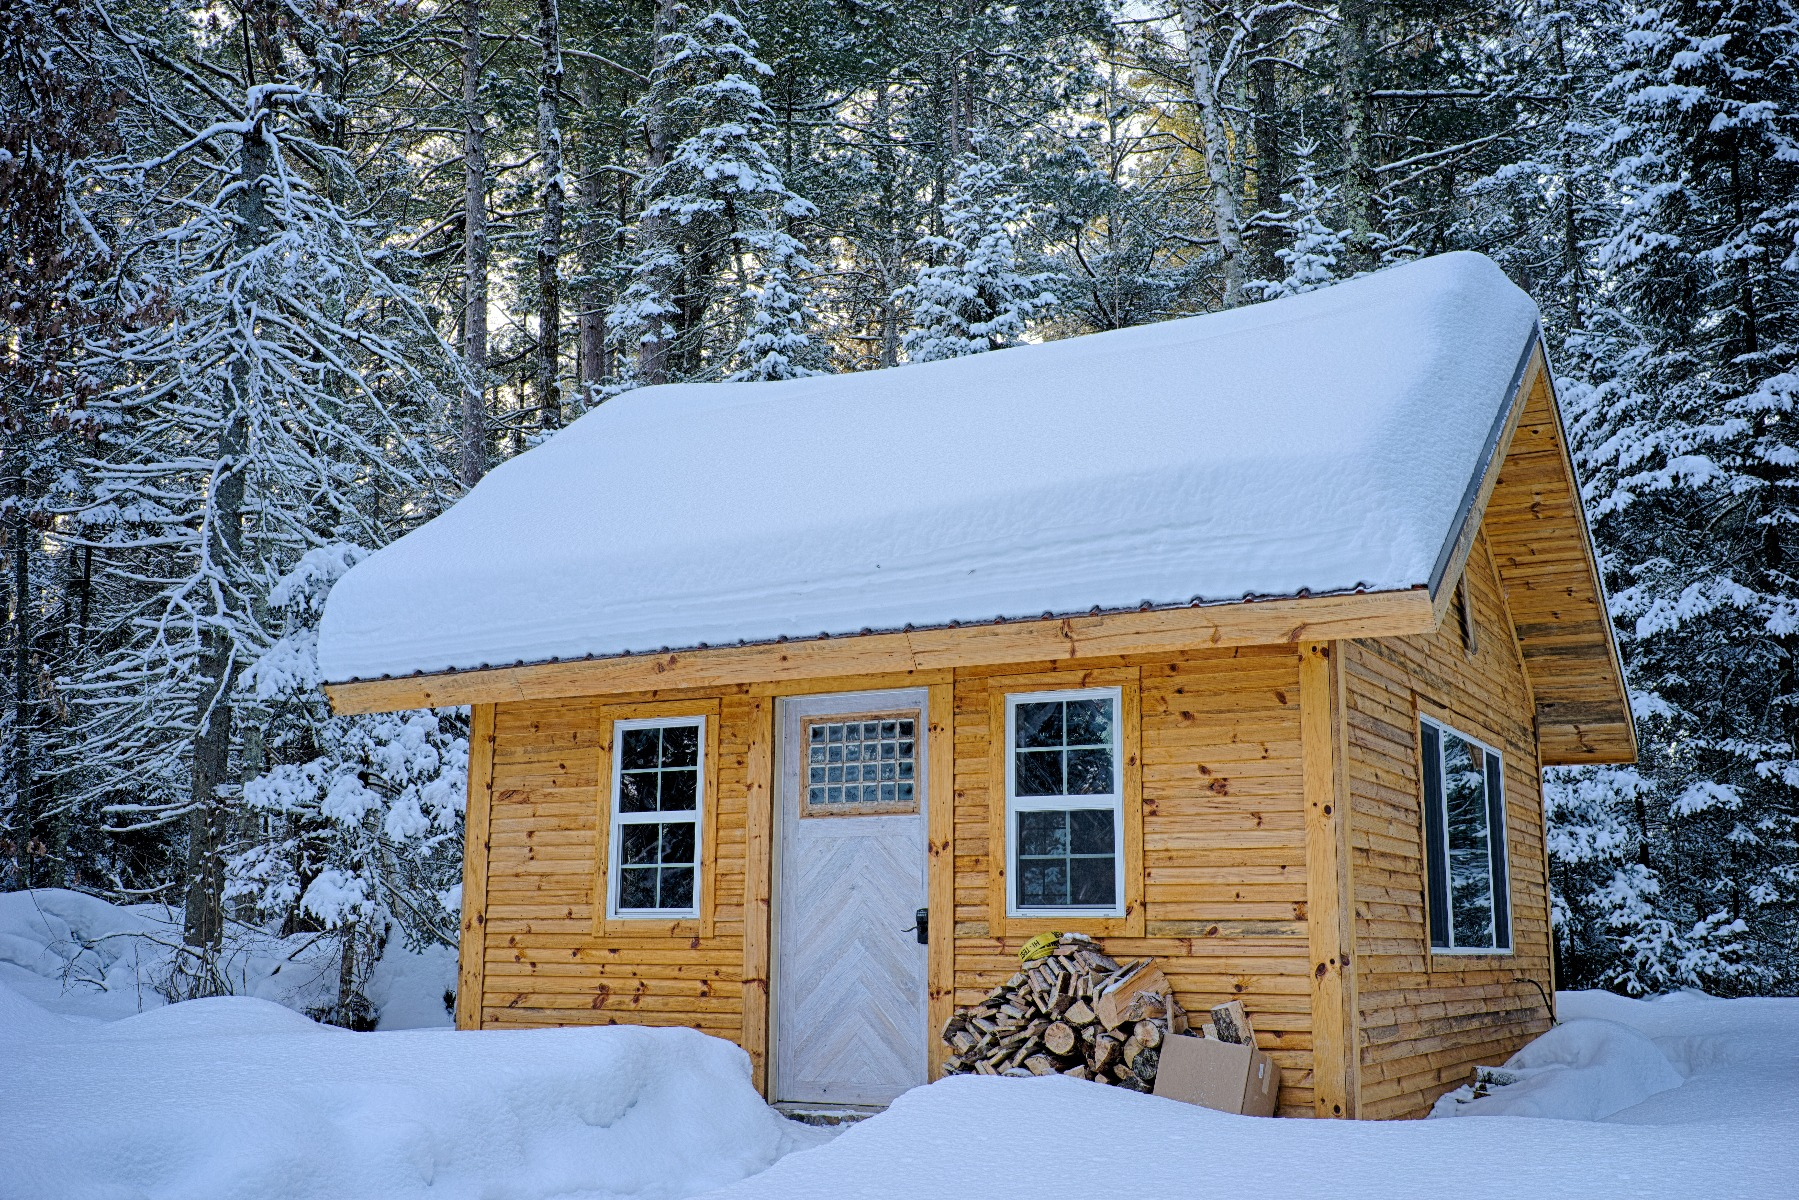 Insulation is a cost-effective way of keeping your cabin warm during the winter